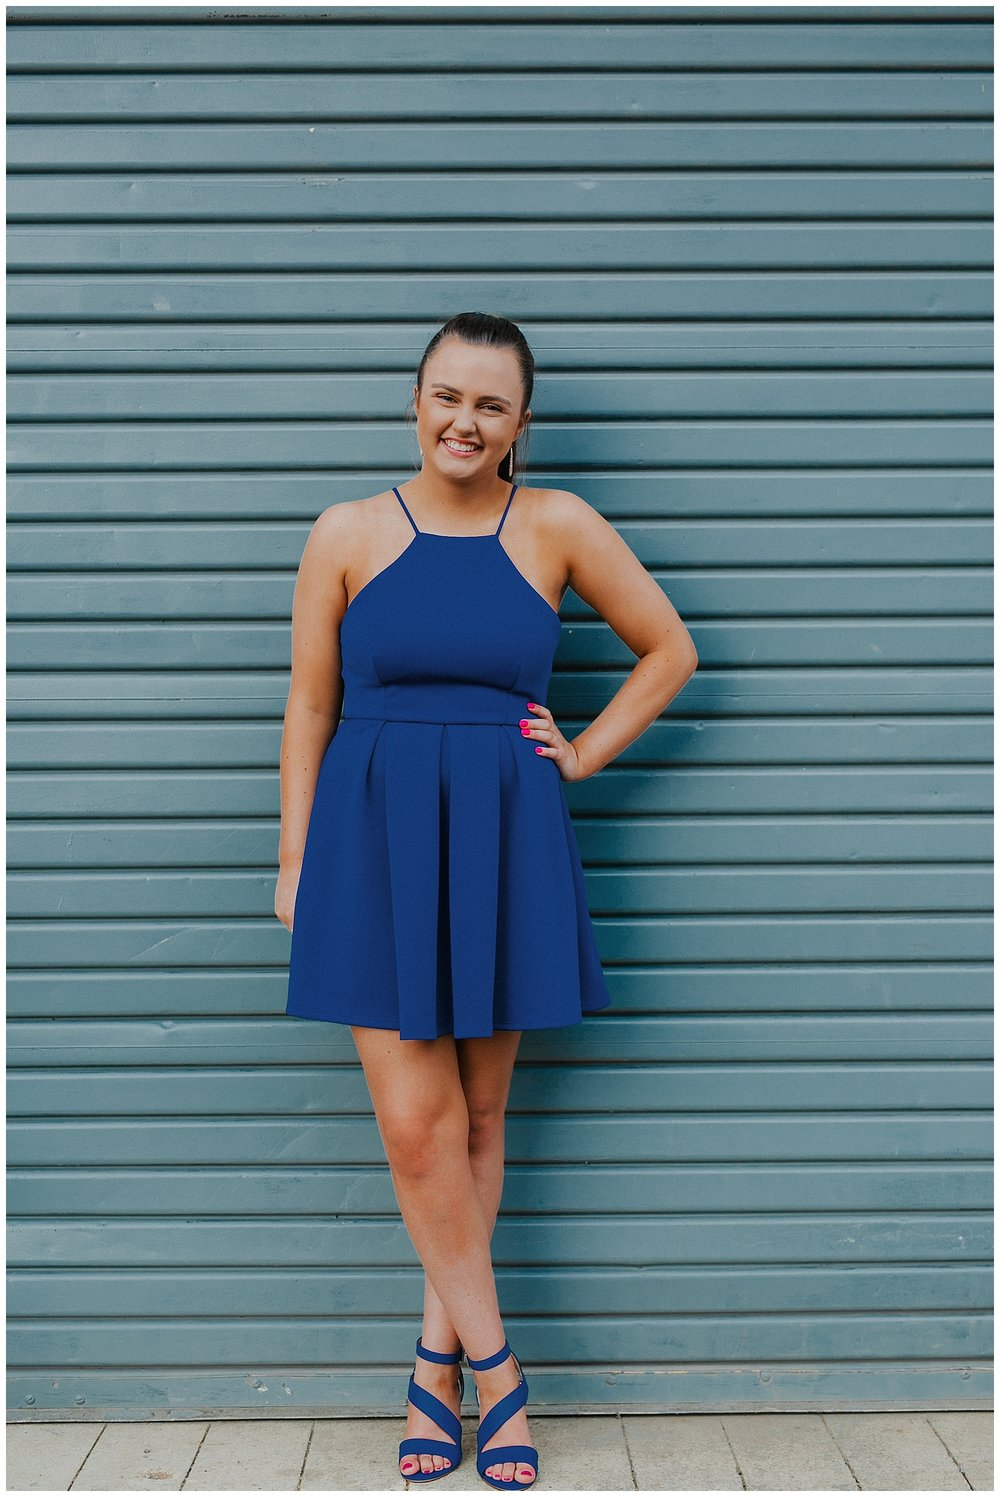 lindybeth photography - senior pictures - nicole-53.jpg